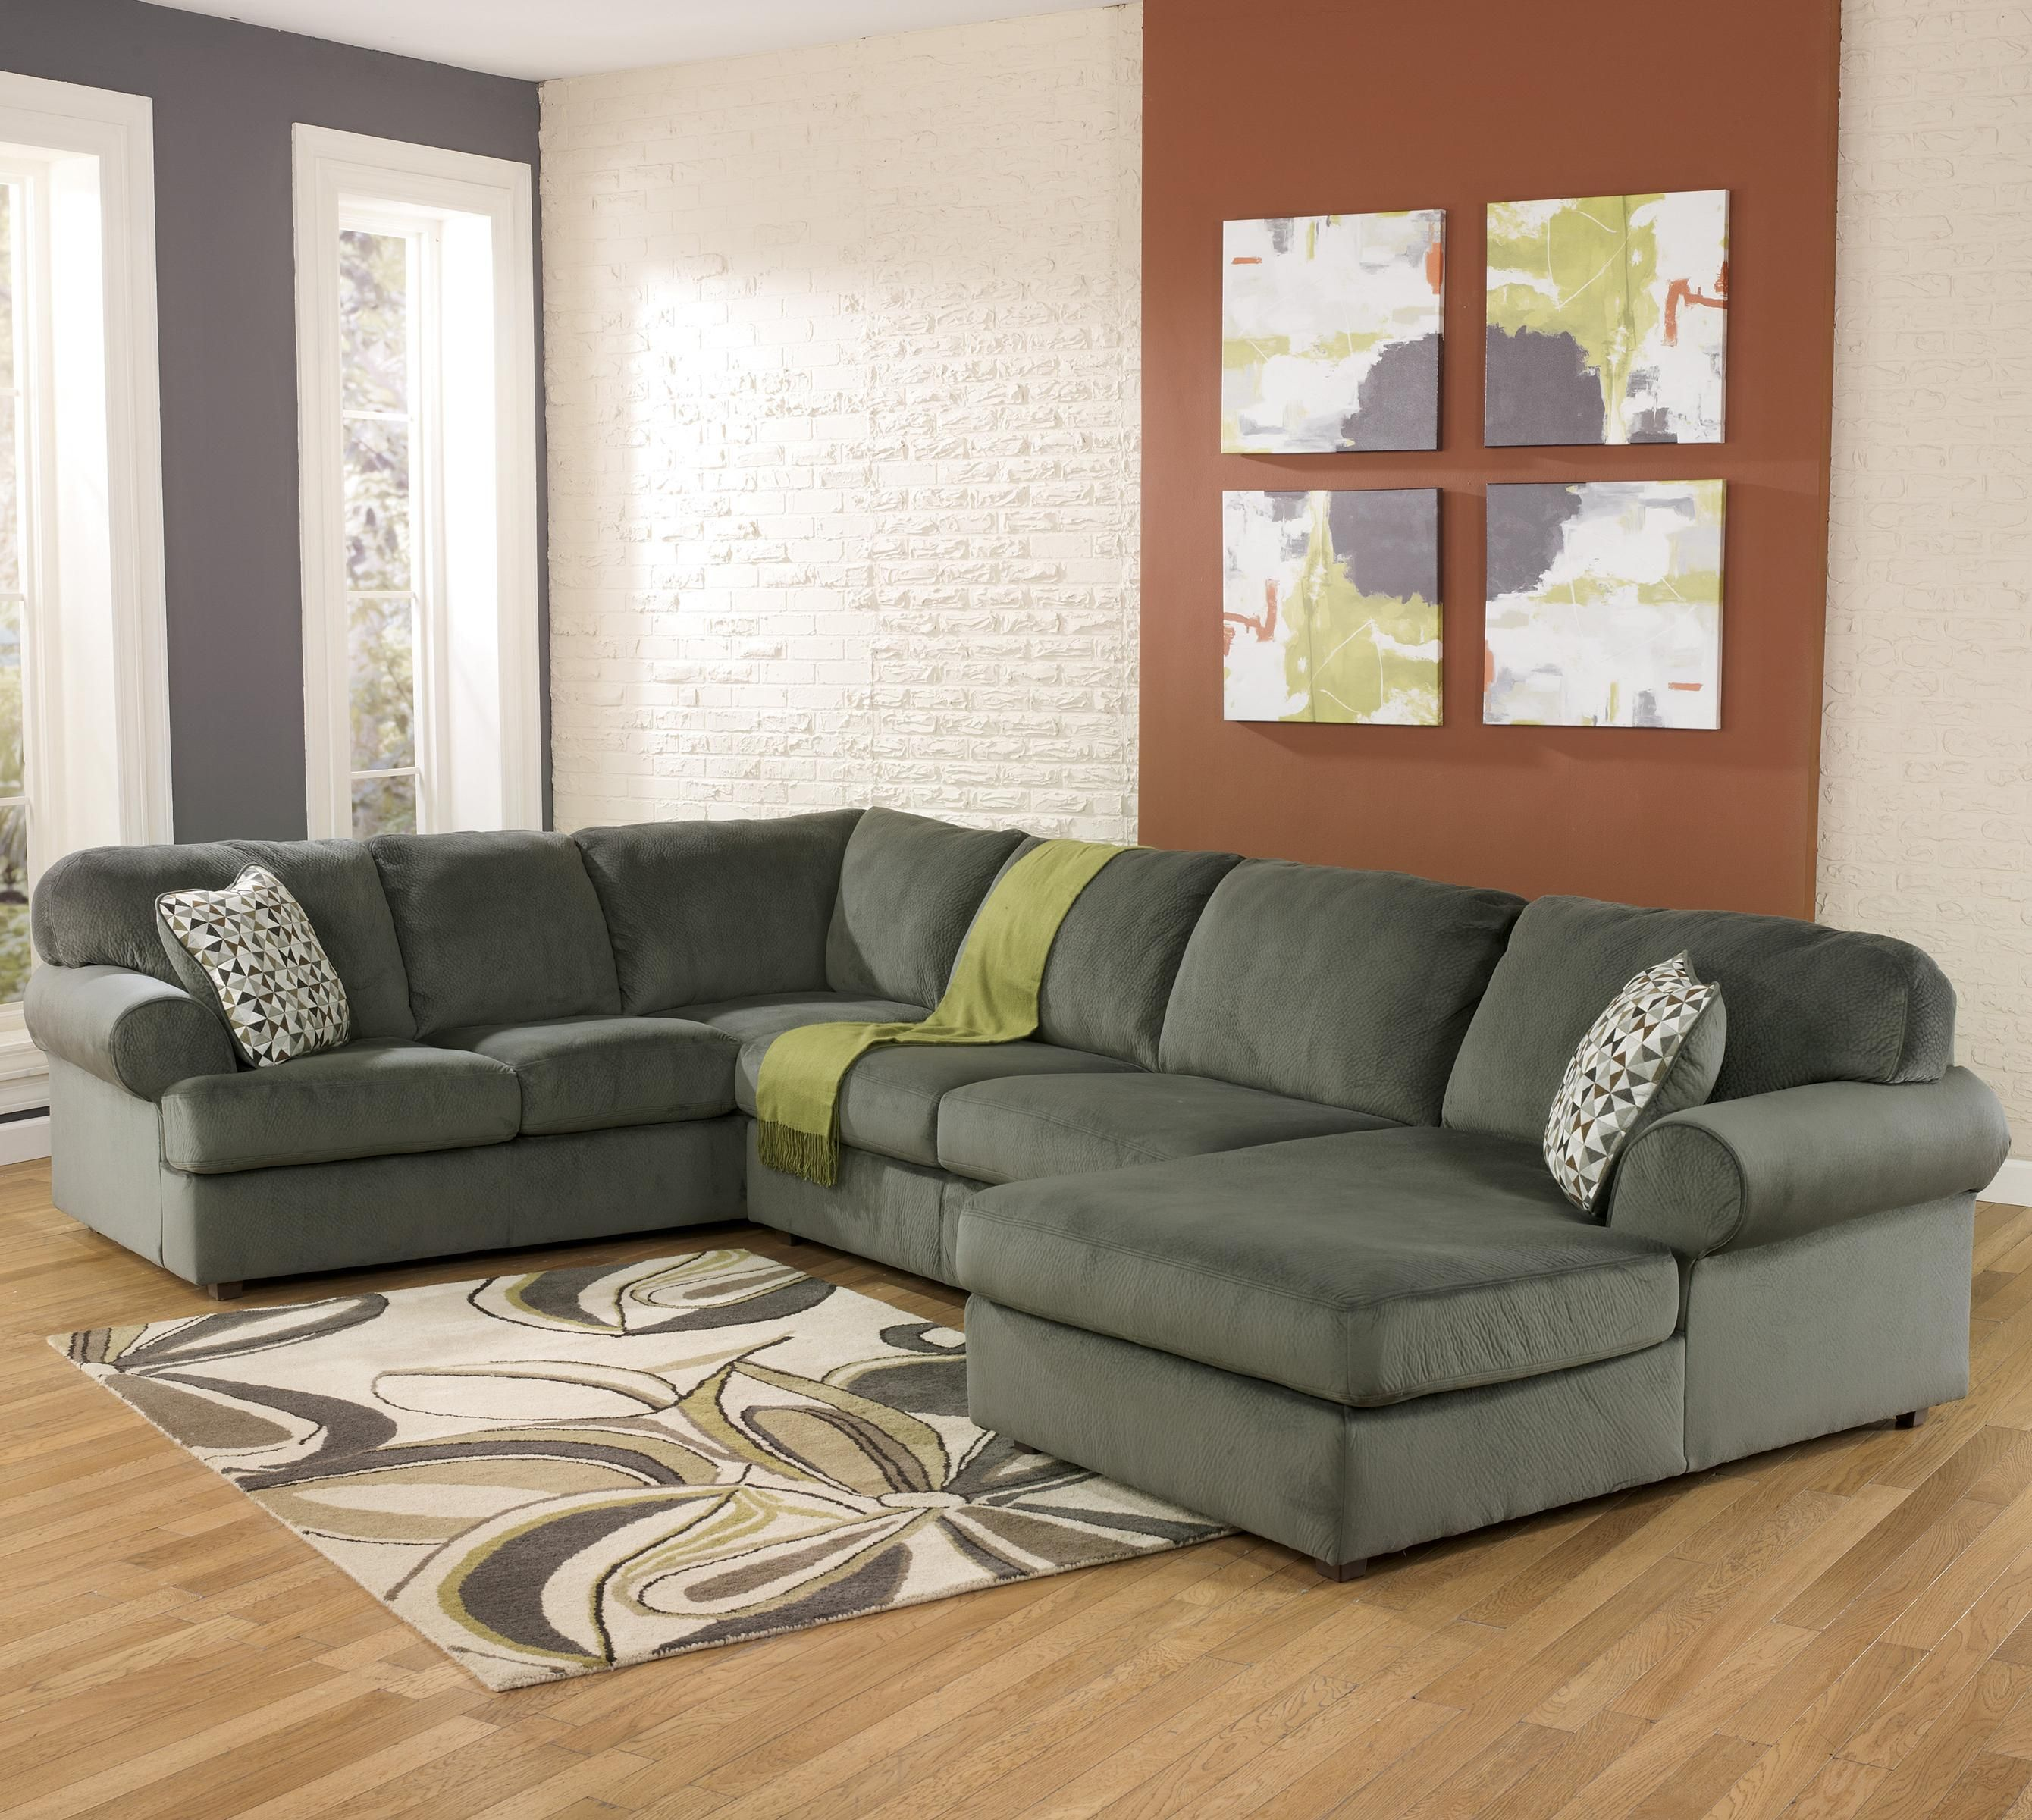 Jessa Place Pewter Sectional Sofa with Right Chaise by Signature